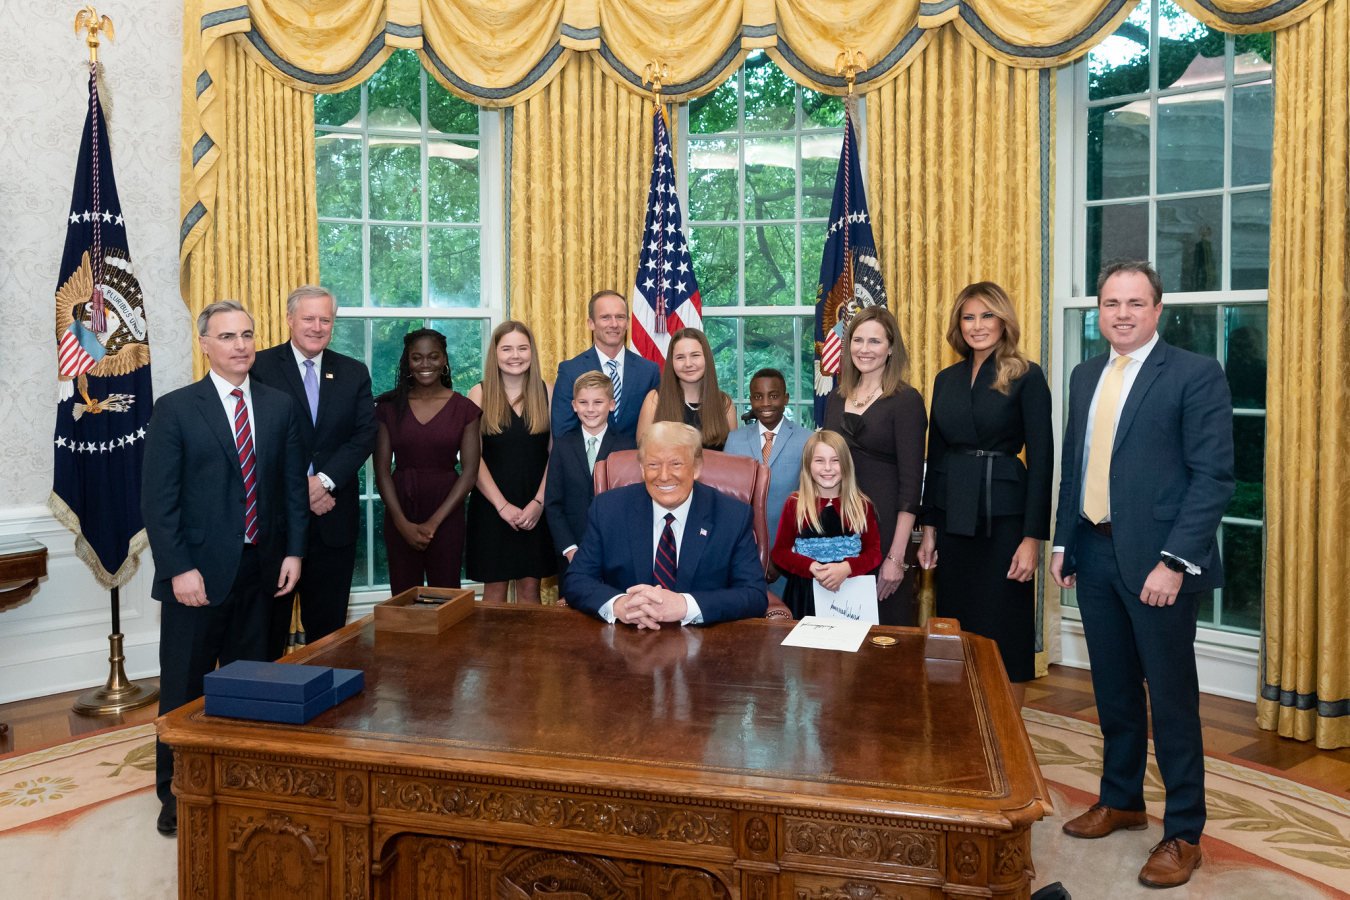 President Trump Nominates Judge Amy Coney Barrett for Associate Justice of the U.S. Supreme Court 26 September 2020